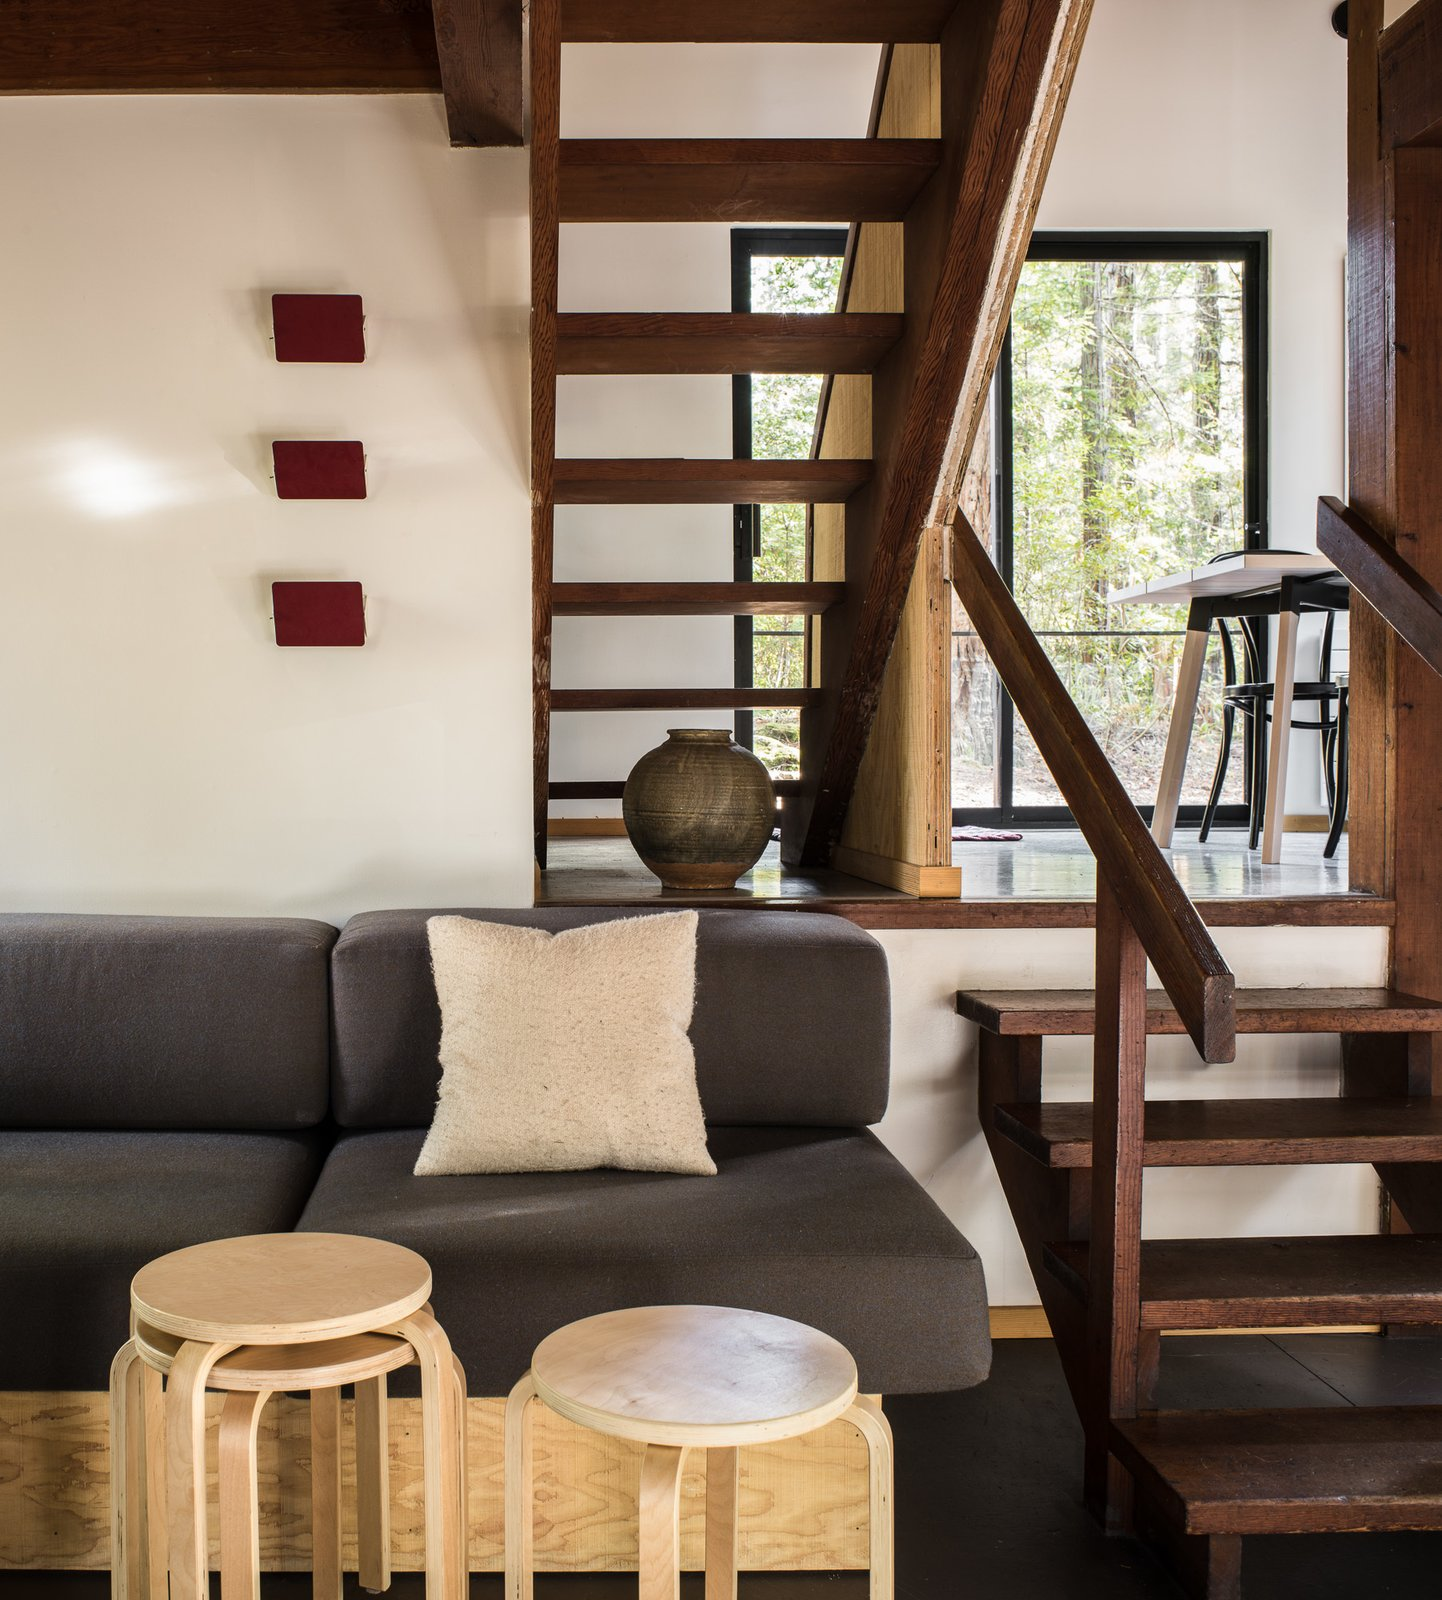 Staircase, Wood Tread, and Wood Railing Open wood stairs allow light to pass between levels.   Photo 2 of 7 in A Midcentury Cabin at California's Sea Ranch Gets a Glowing Makeover